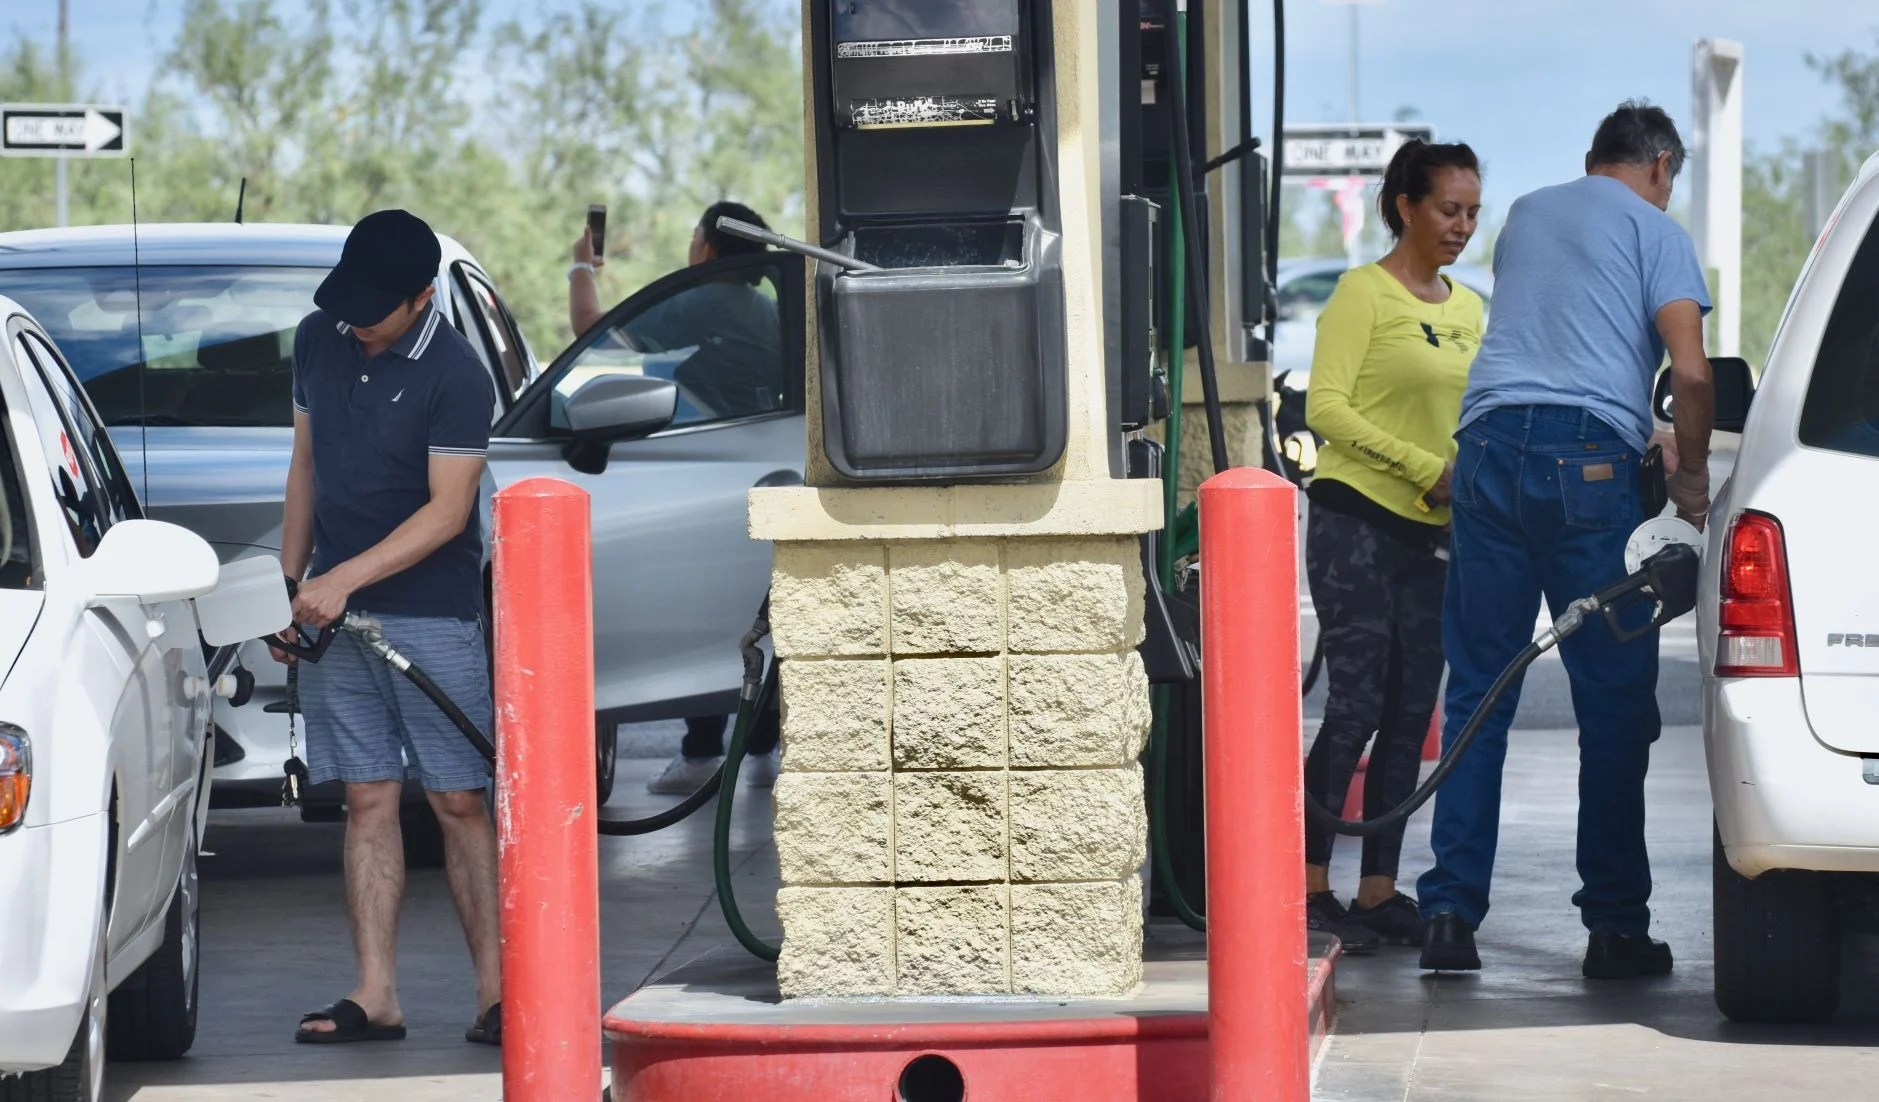 Garage Floor Coating Tucson Cost Filled Up Gas Price Variances Generate Outrage But Few Official